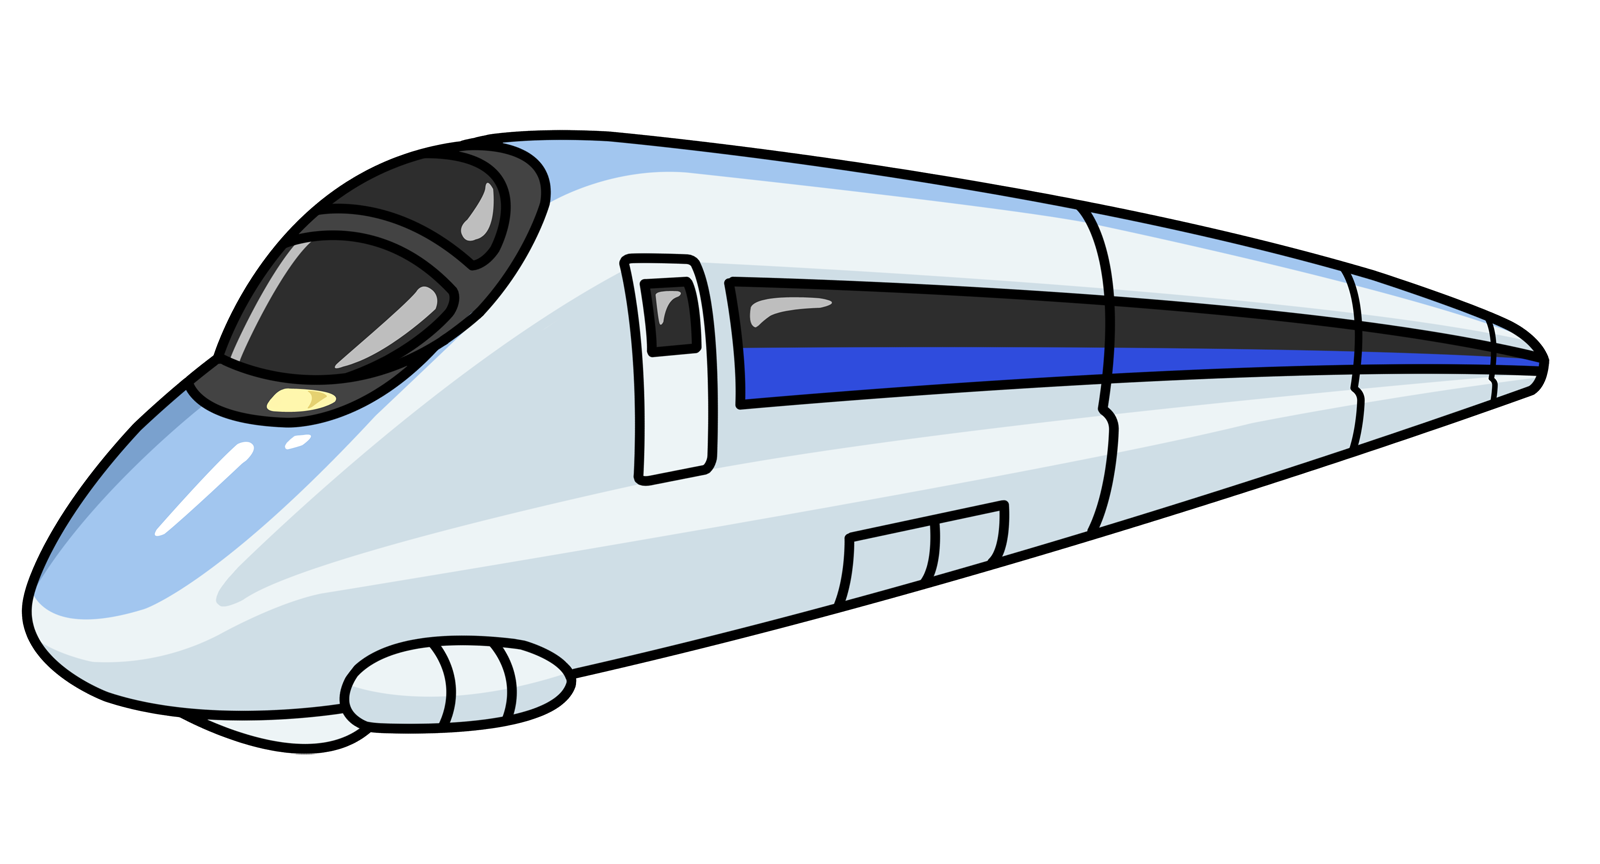 Subway car clipart image freeuse stock 28+ Collection of Subway Train Clipart | High quality, free cliparts ... image freeuse stock